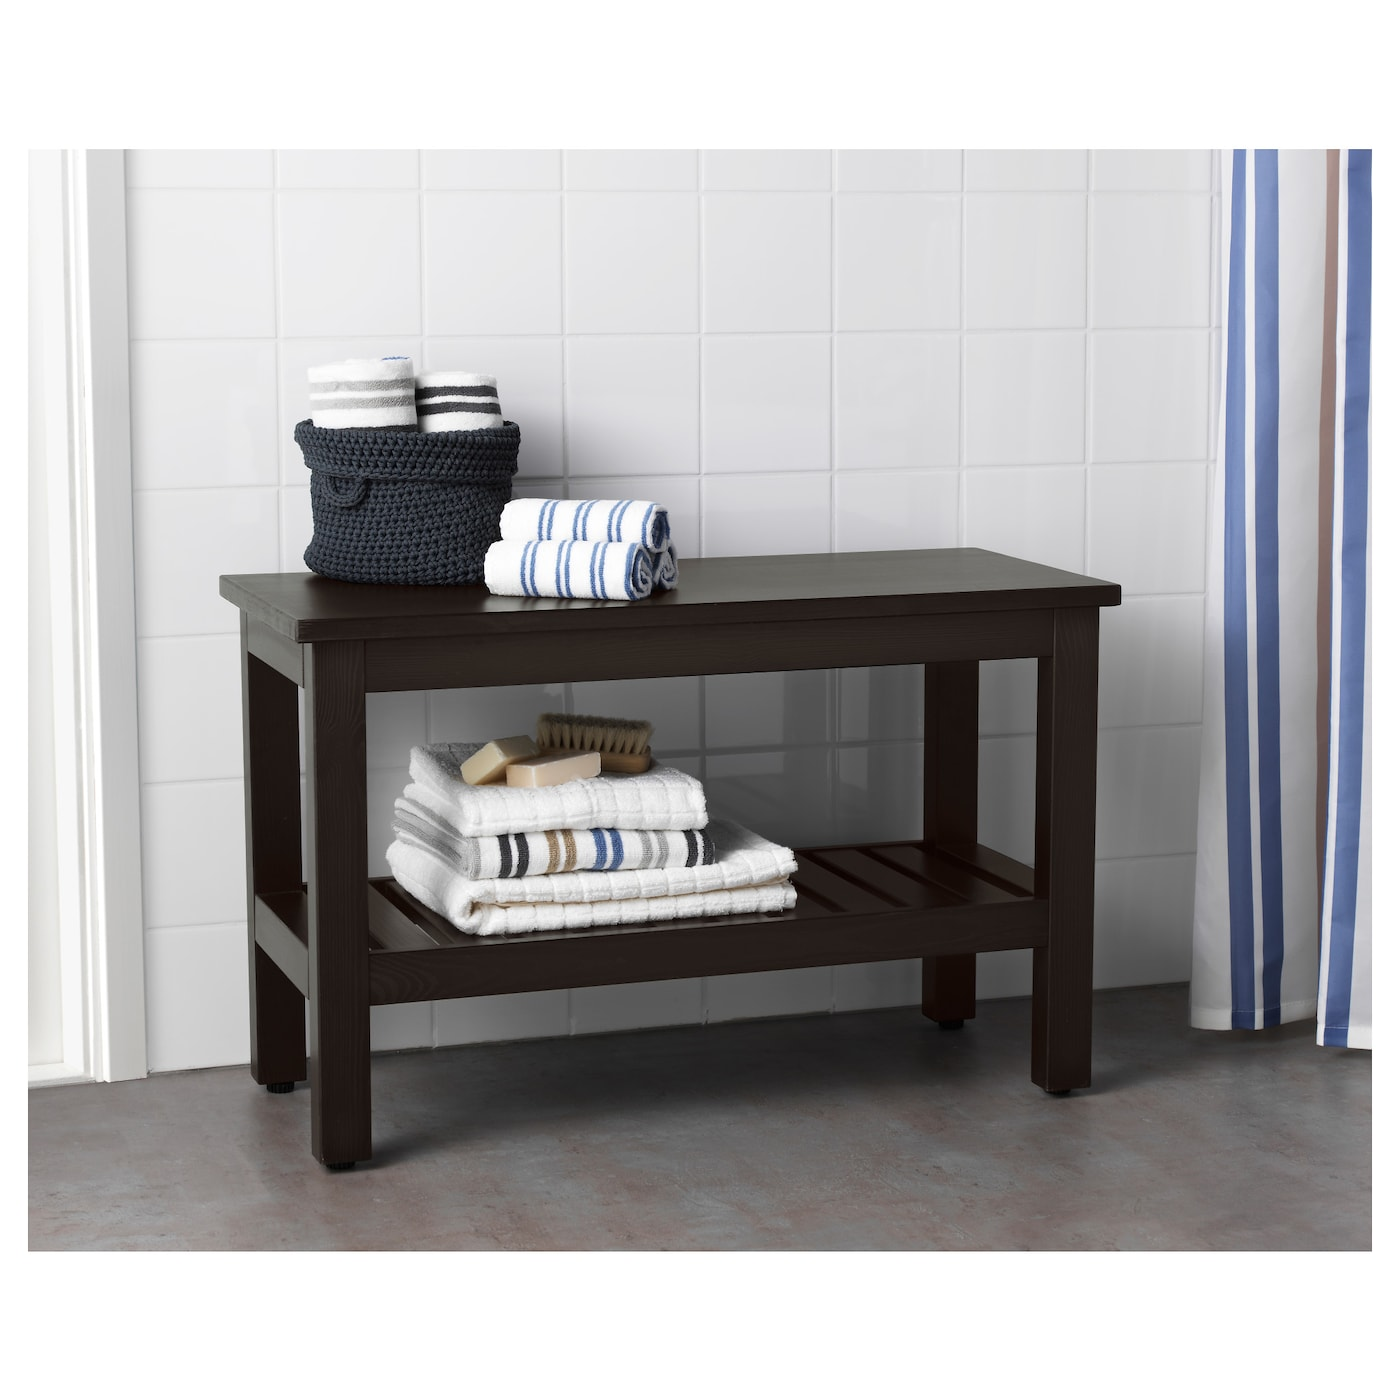 HEMNES Bench Black brown stain 83 cm IKEA